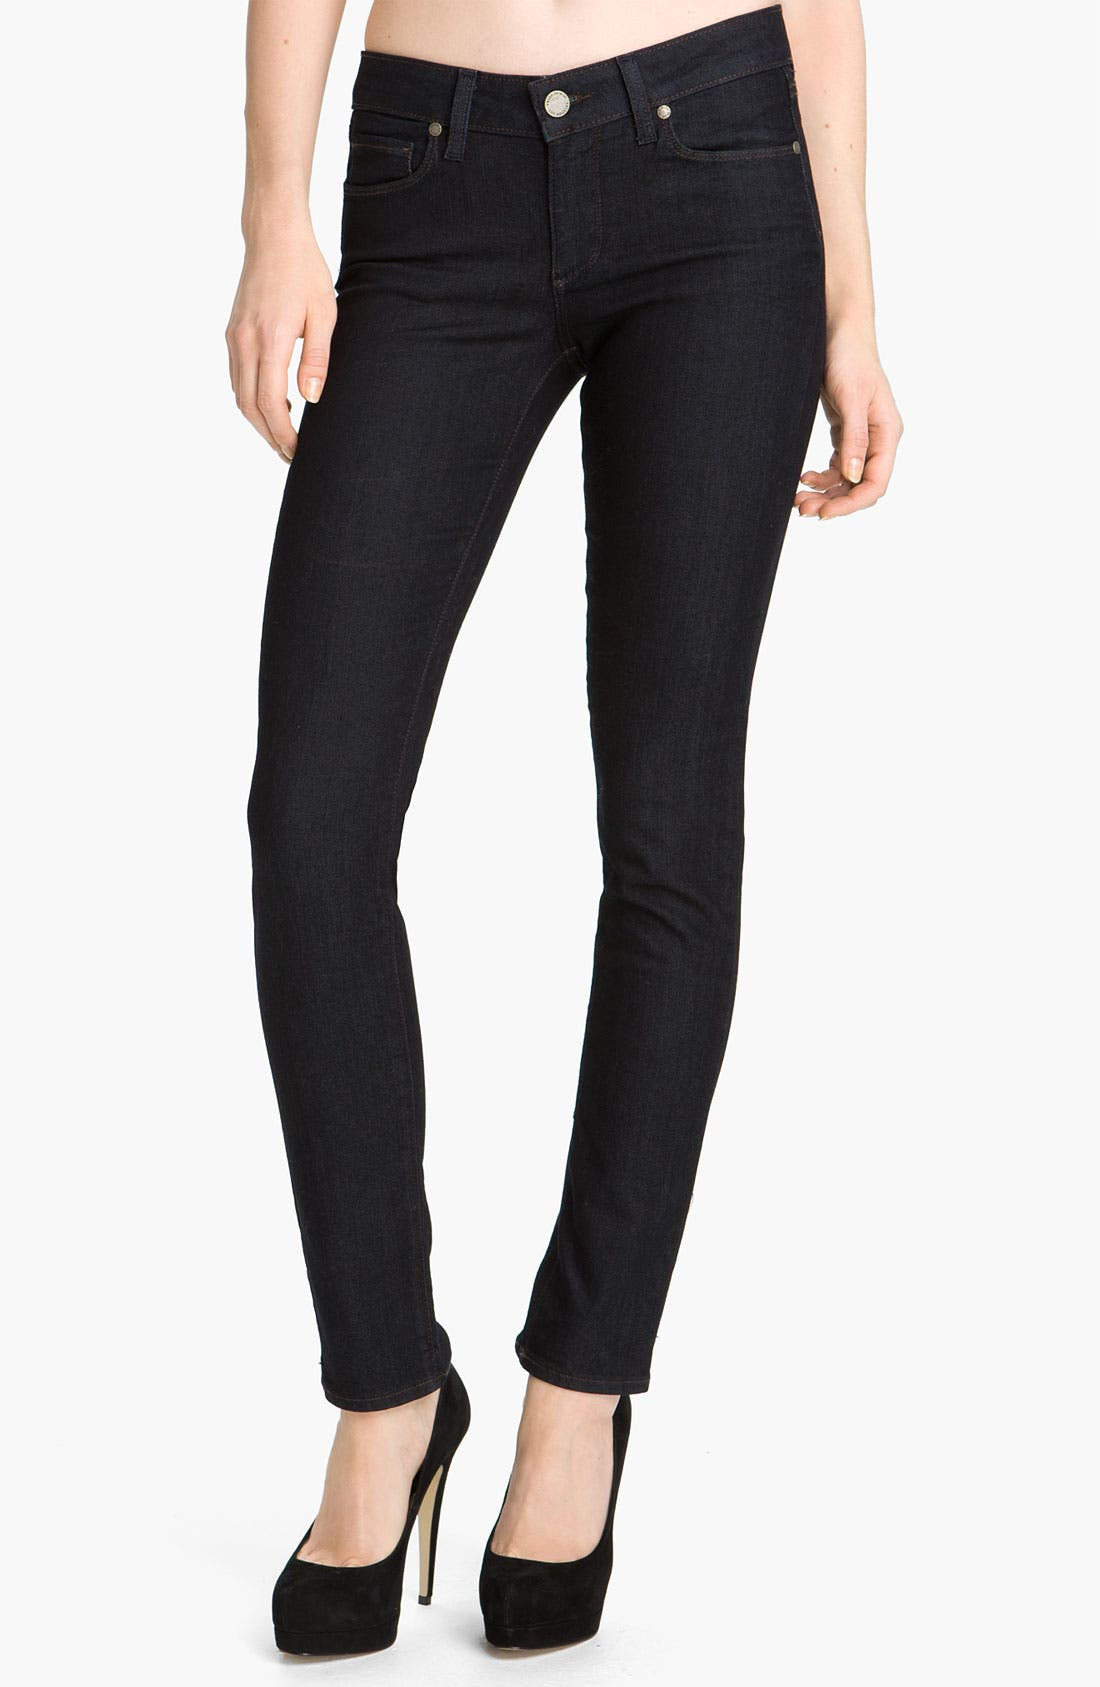 Alternate Image 1 Selected - Paige Denim 'Skyline 12' Skinny Stretch Jeans (Twilight)